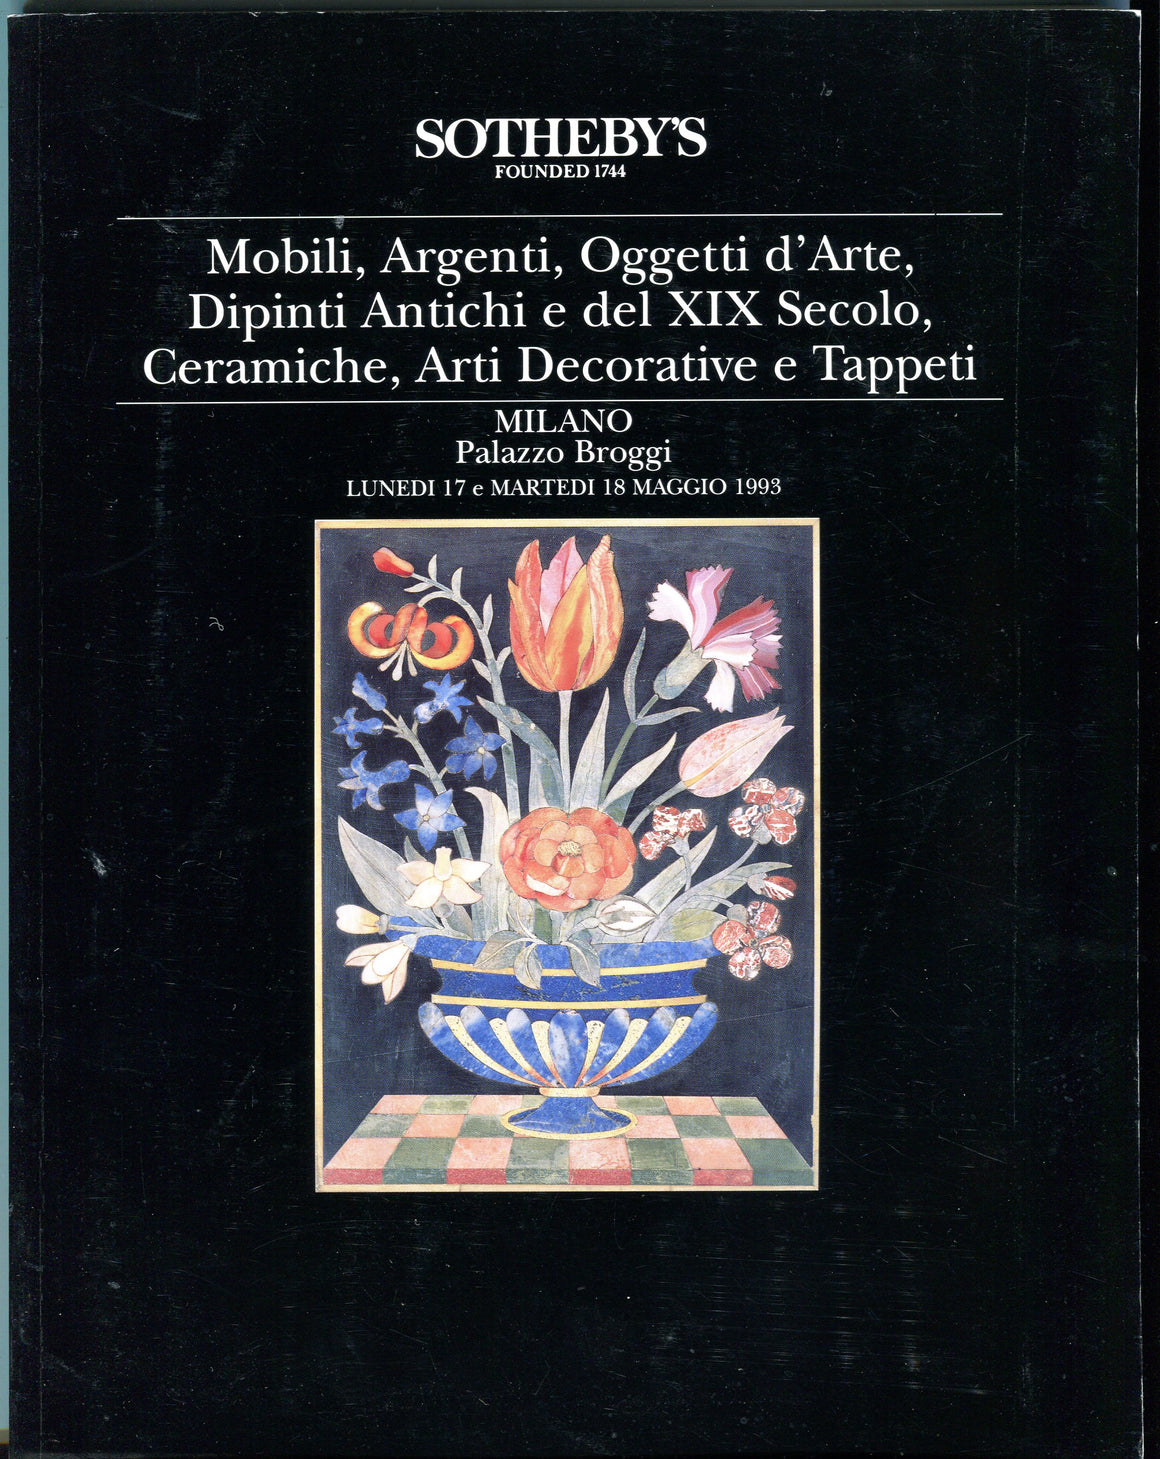 Sothebys Auction Catalog May 18 1993 Mobili, Argenti, XIX Secolo